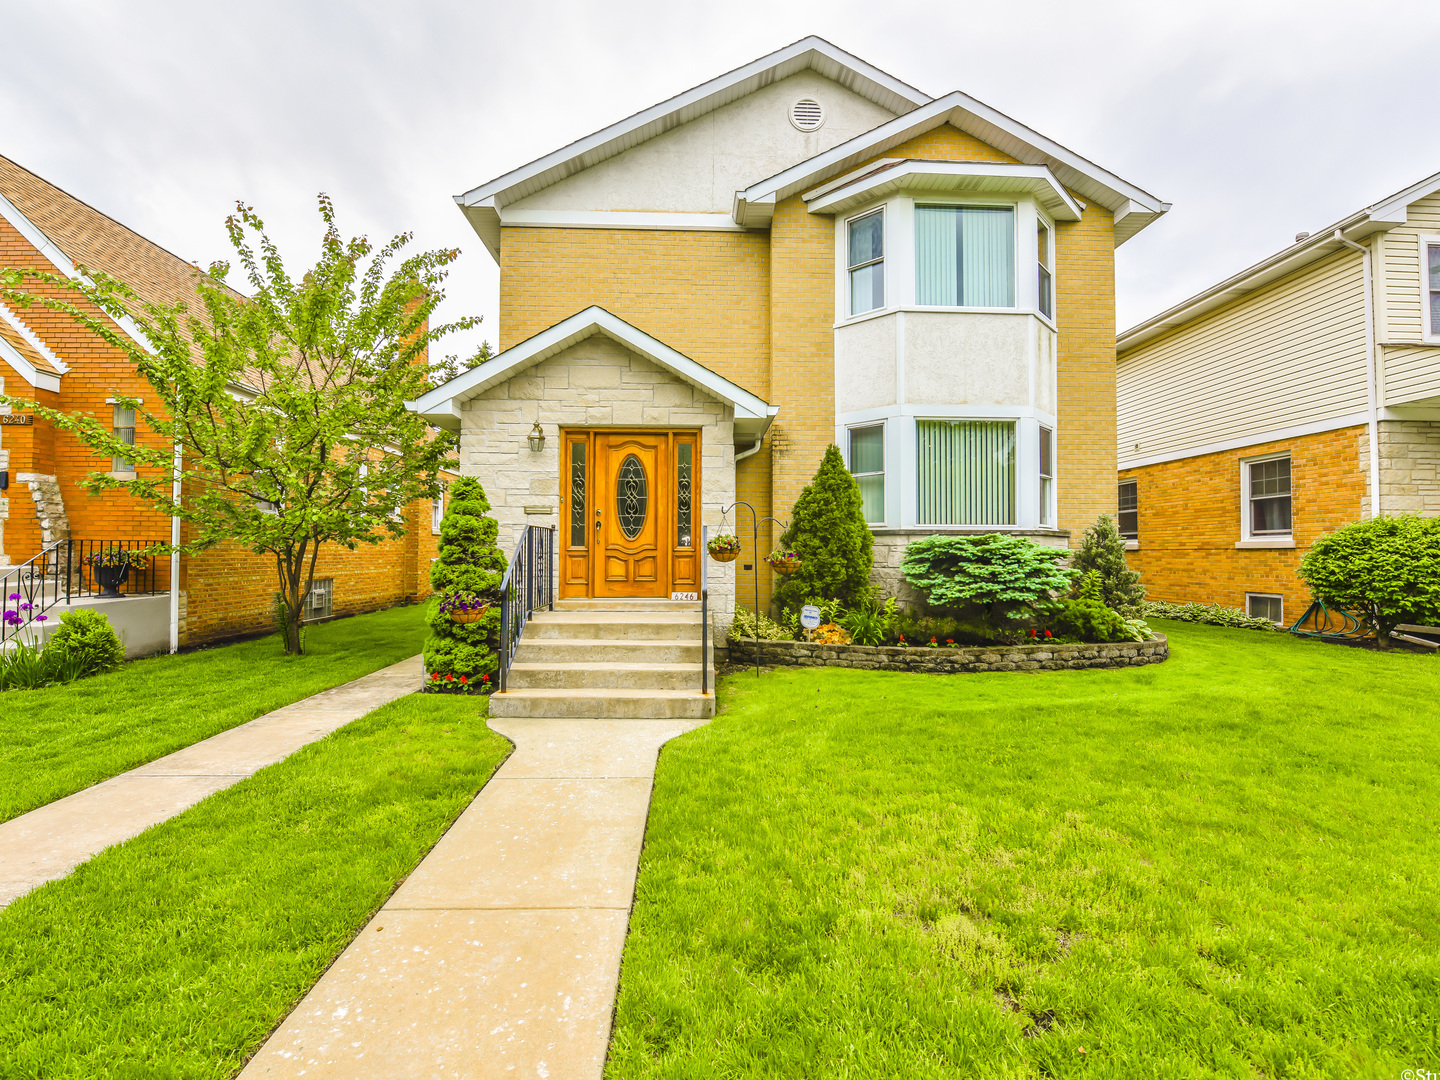 6246 NORTH INDIAN ROAD, CHICAGO, IL 60646